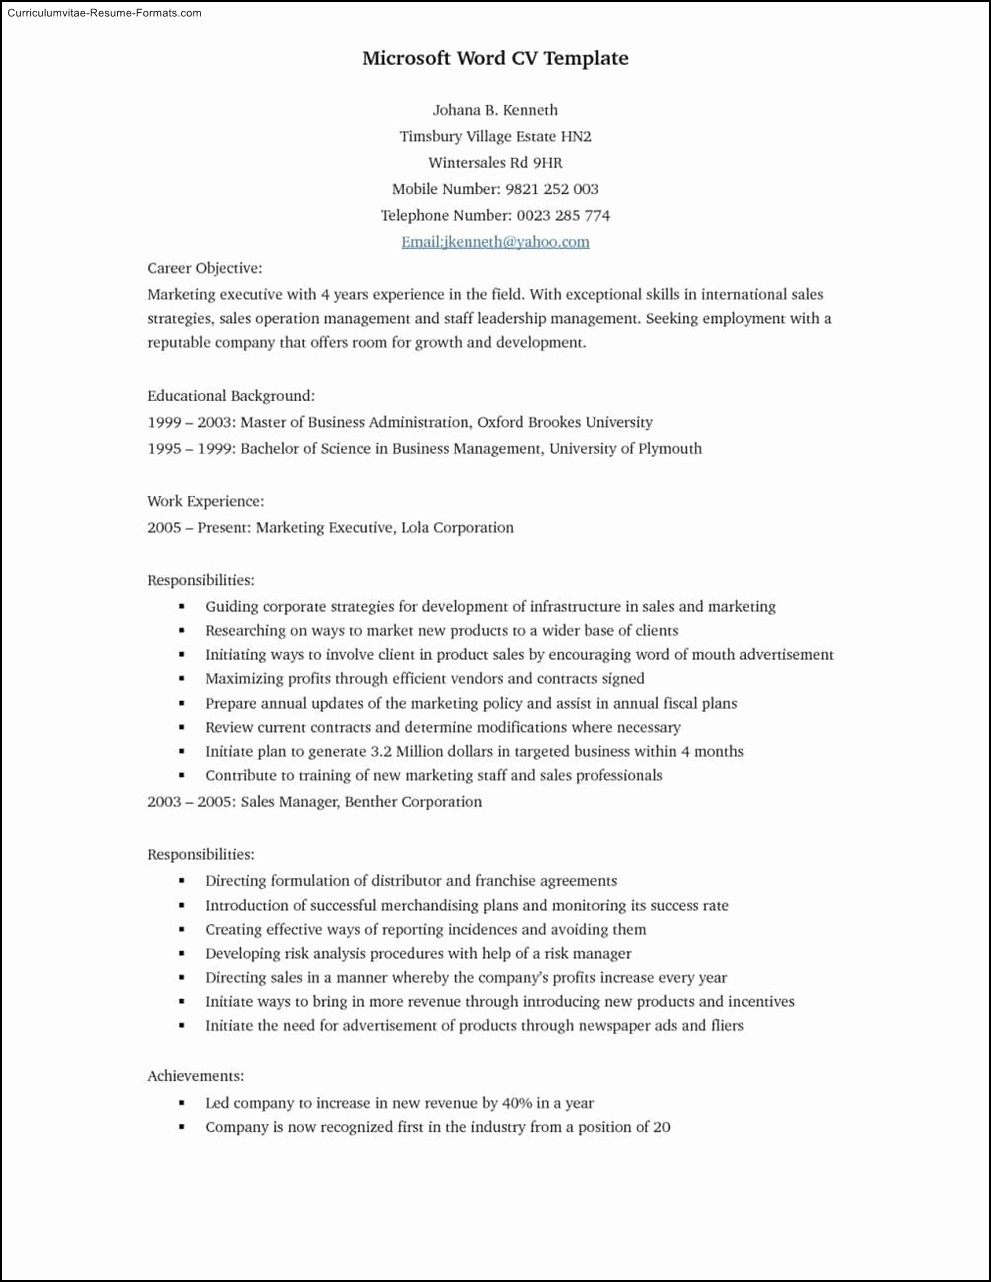 Resume Templates Free Microsoft Word New Best Resume Template Microsoft Word Free Samples